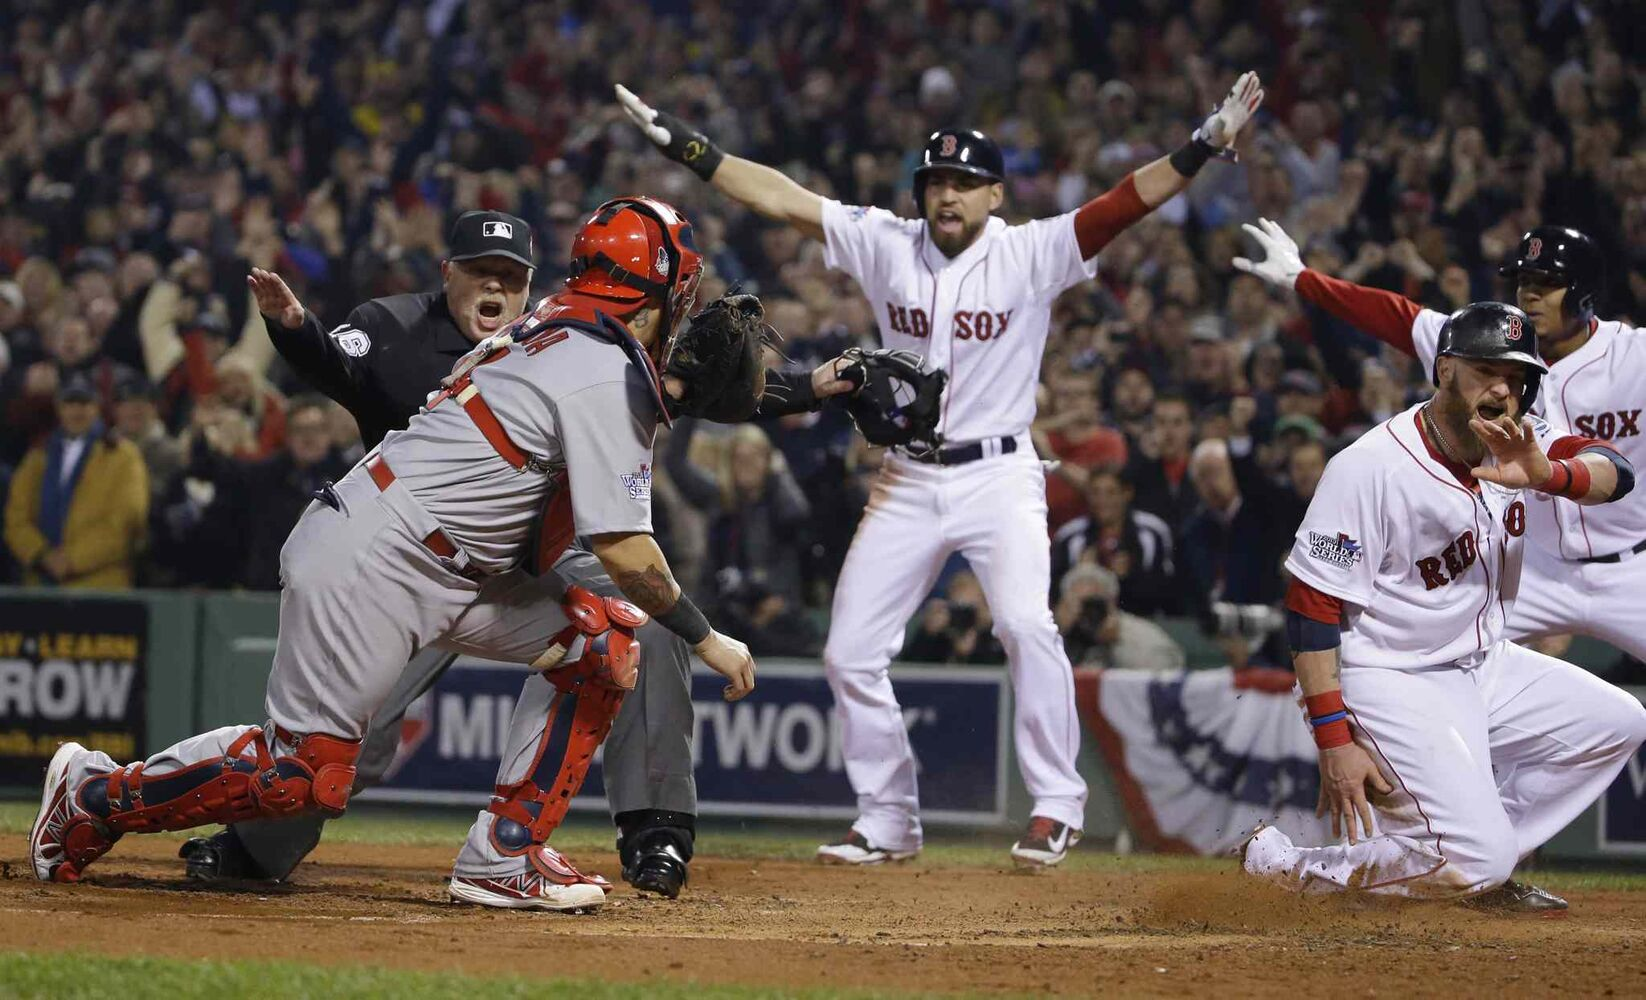 St. Louis Cardinals catcher Yadier Molina looks back as home plate umpire Adam Wainwright call Boston Red Sox's Jonny Gomes safe on a three-run RBI double by Shane Victorino. (Matt Slocum / The Associated Press)